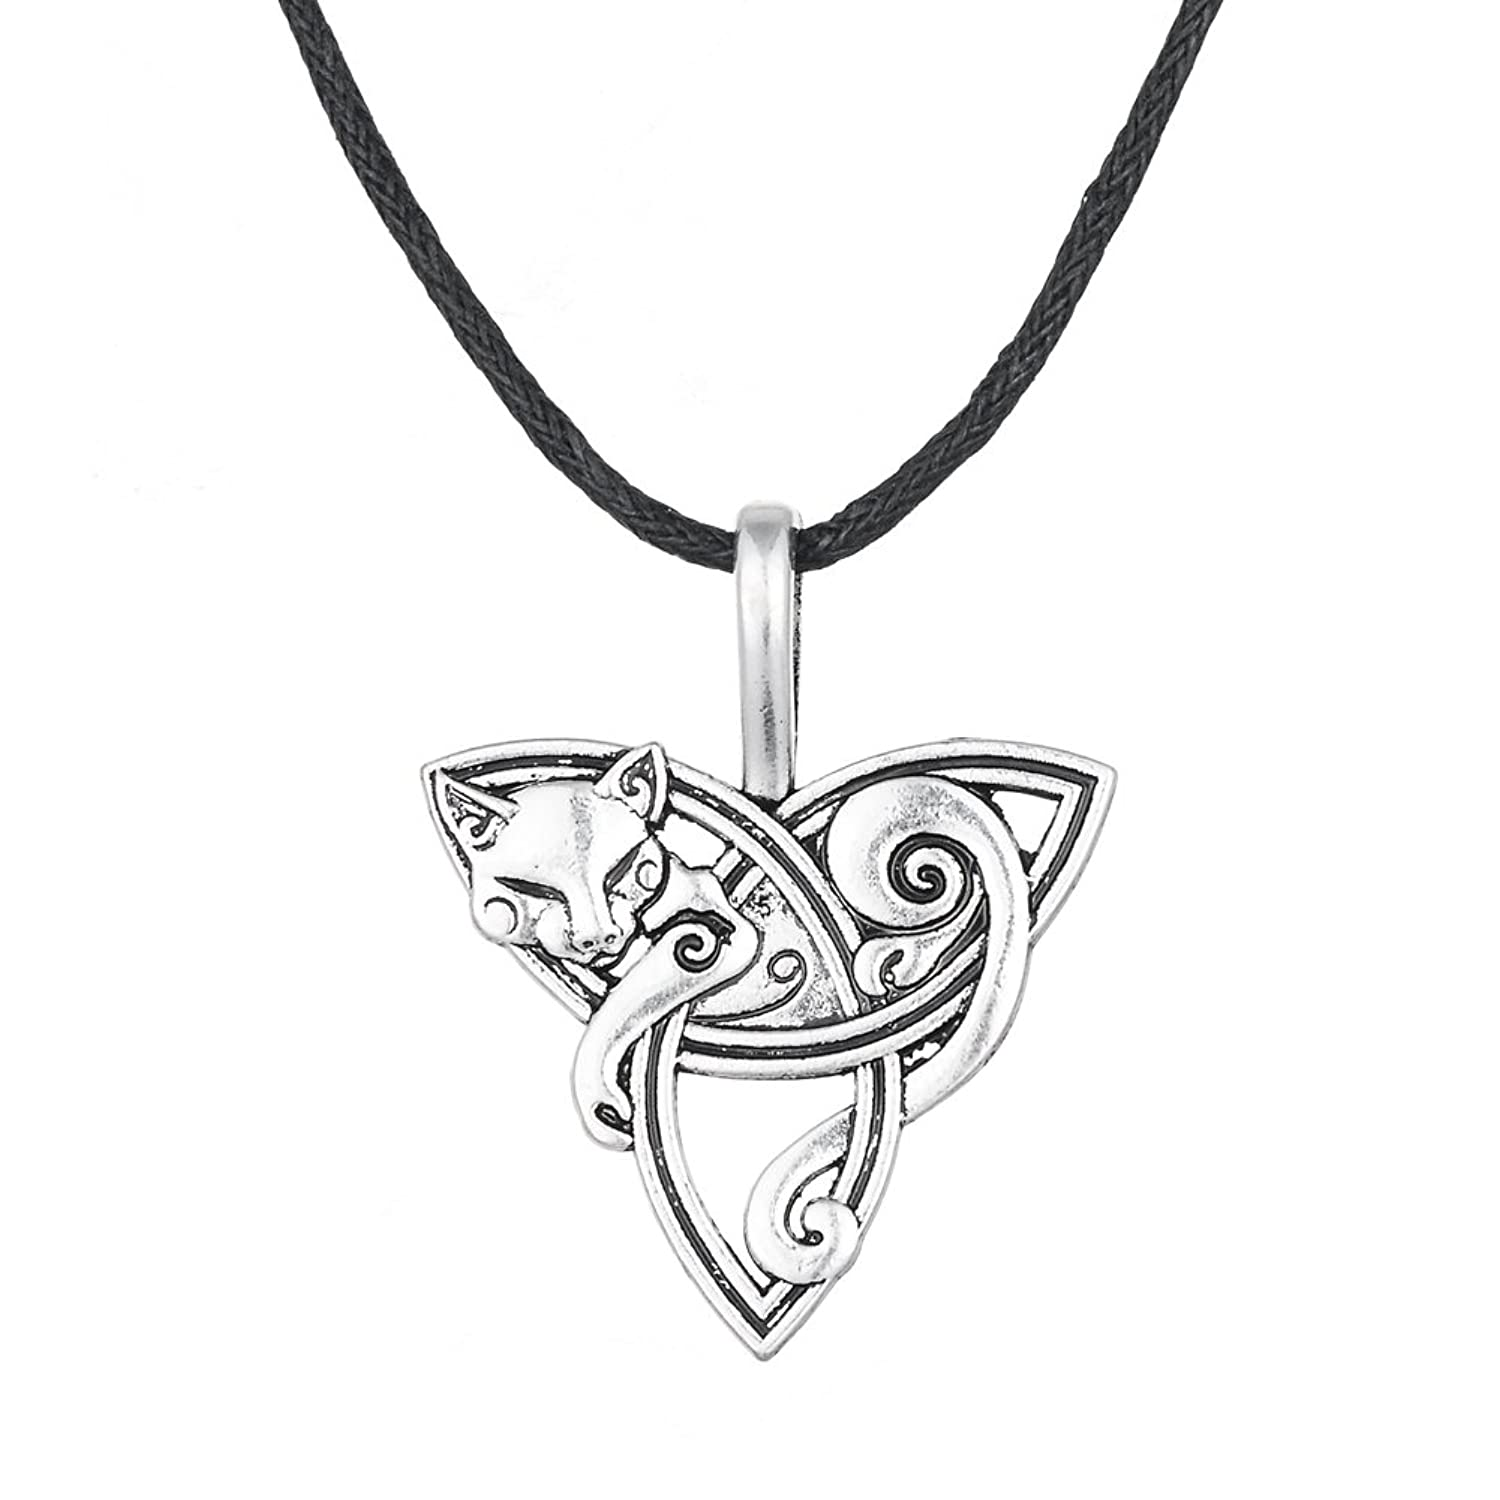 Wicca Wild Irish Knot Animal Fox Head Smart Symbol Pendant Necklace Jewelry for Men and Women